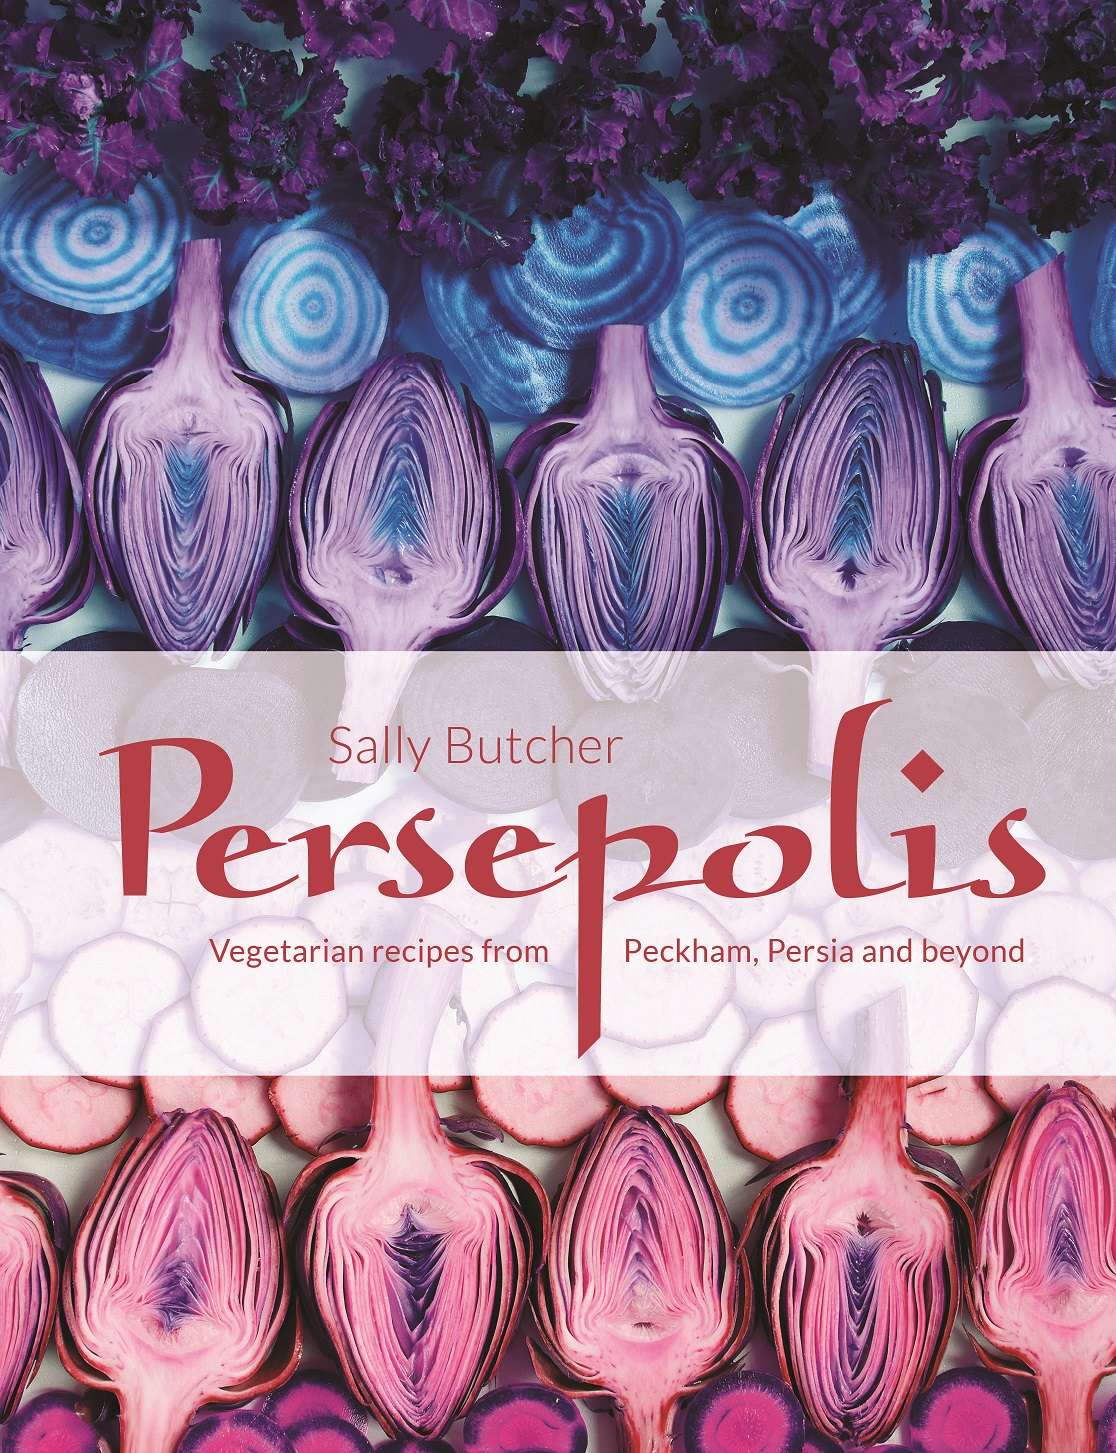 PersepolisVegetarian Recipes from Peckham, Persia and Beyond by Sally Butcher, ISBN: 9781910496886